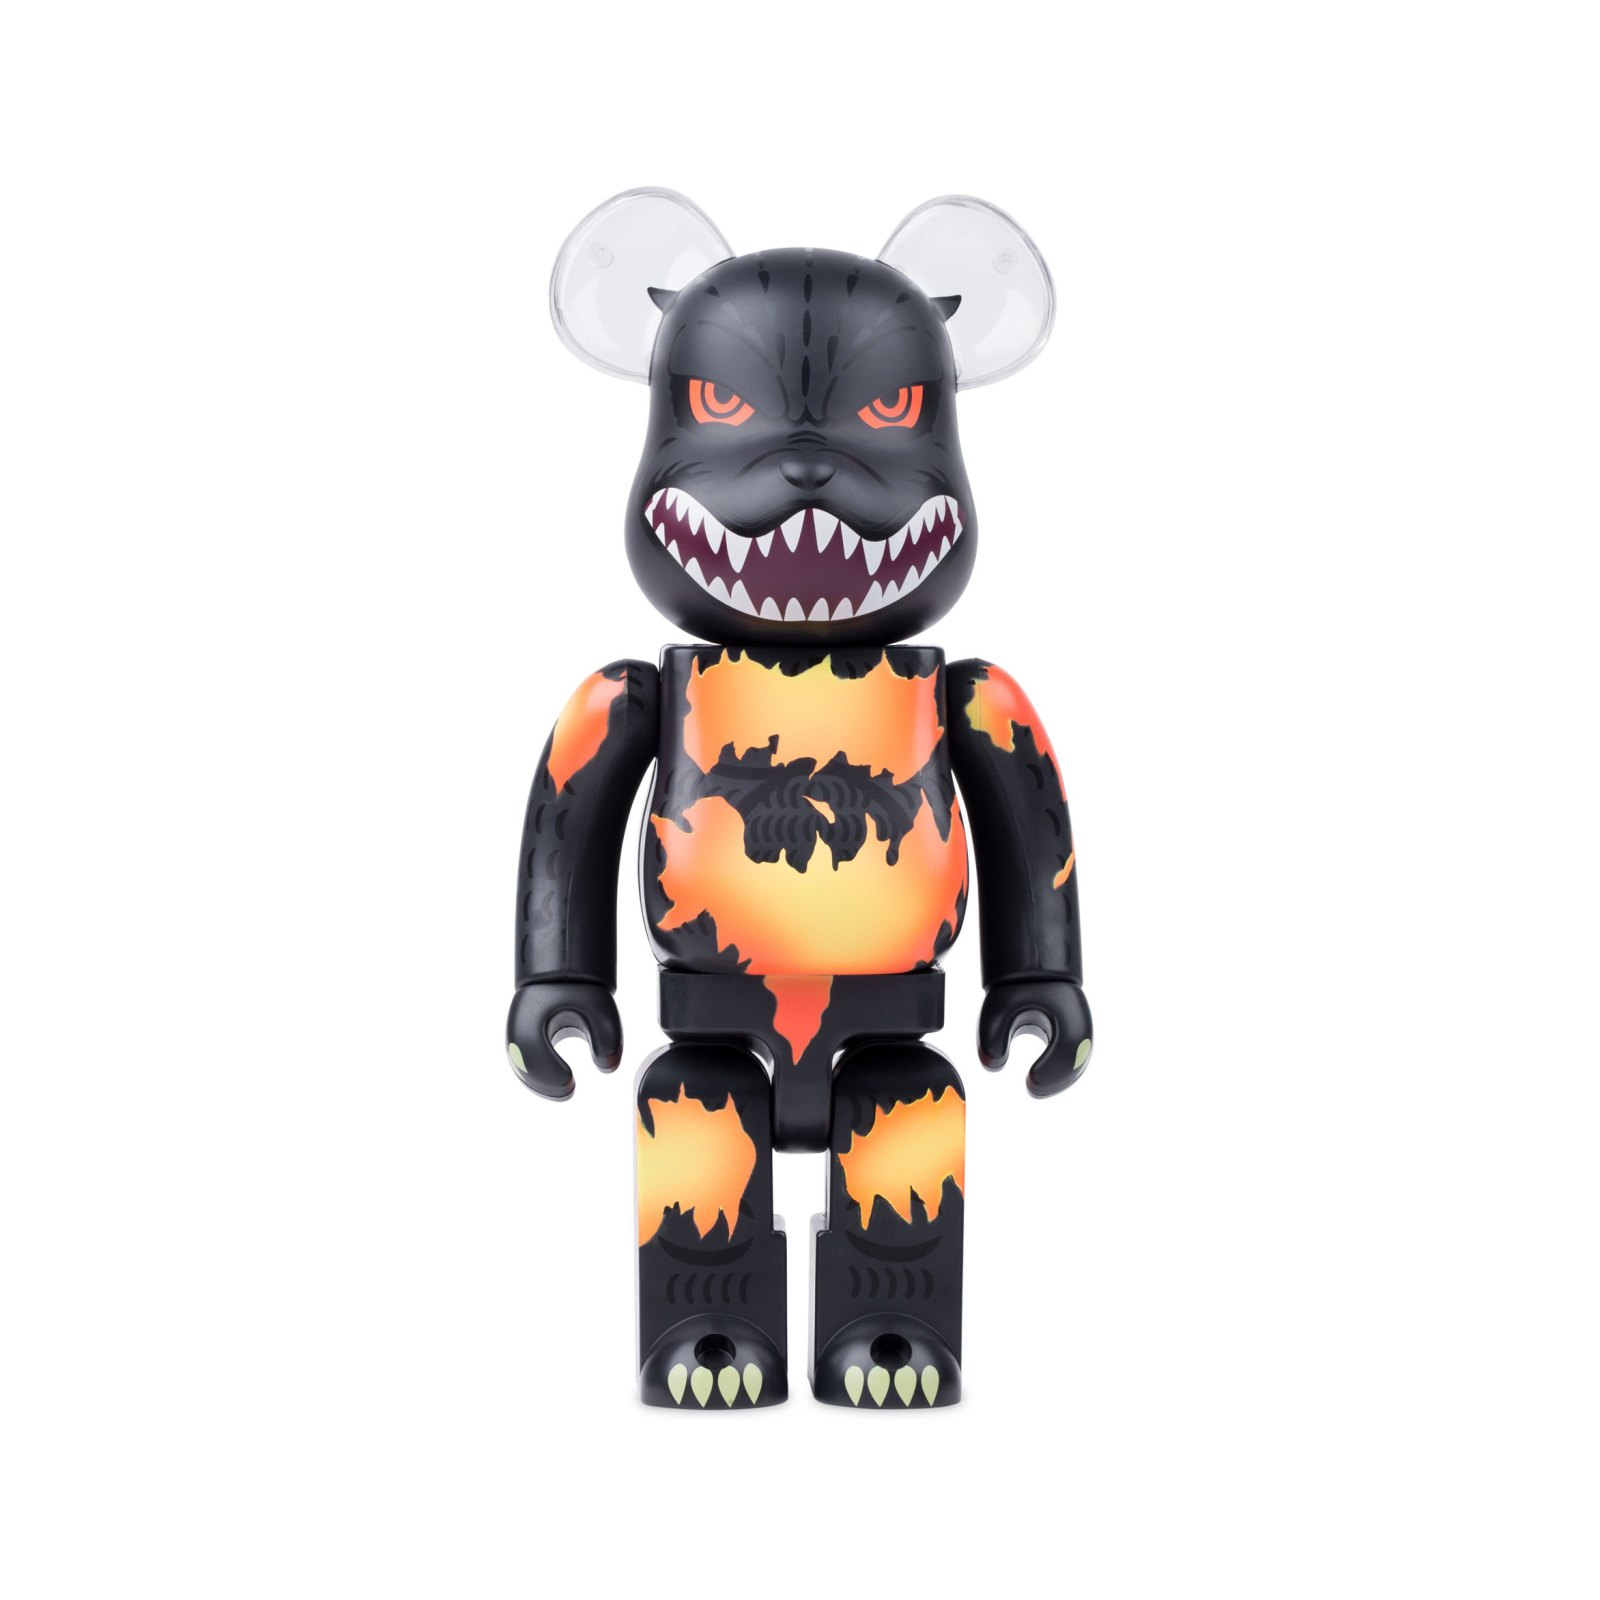 Medicom Toy Godzilla BE@RBRICK Desgodzi Buring Version 400%